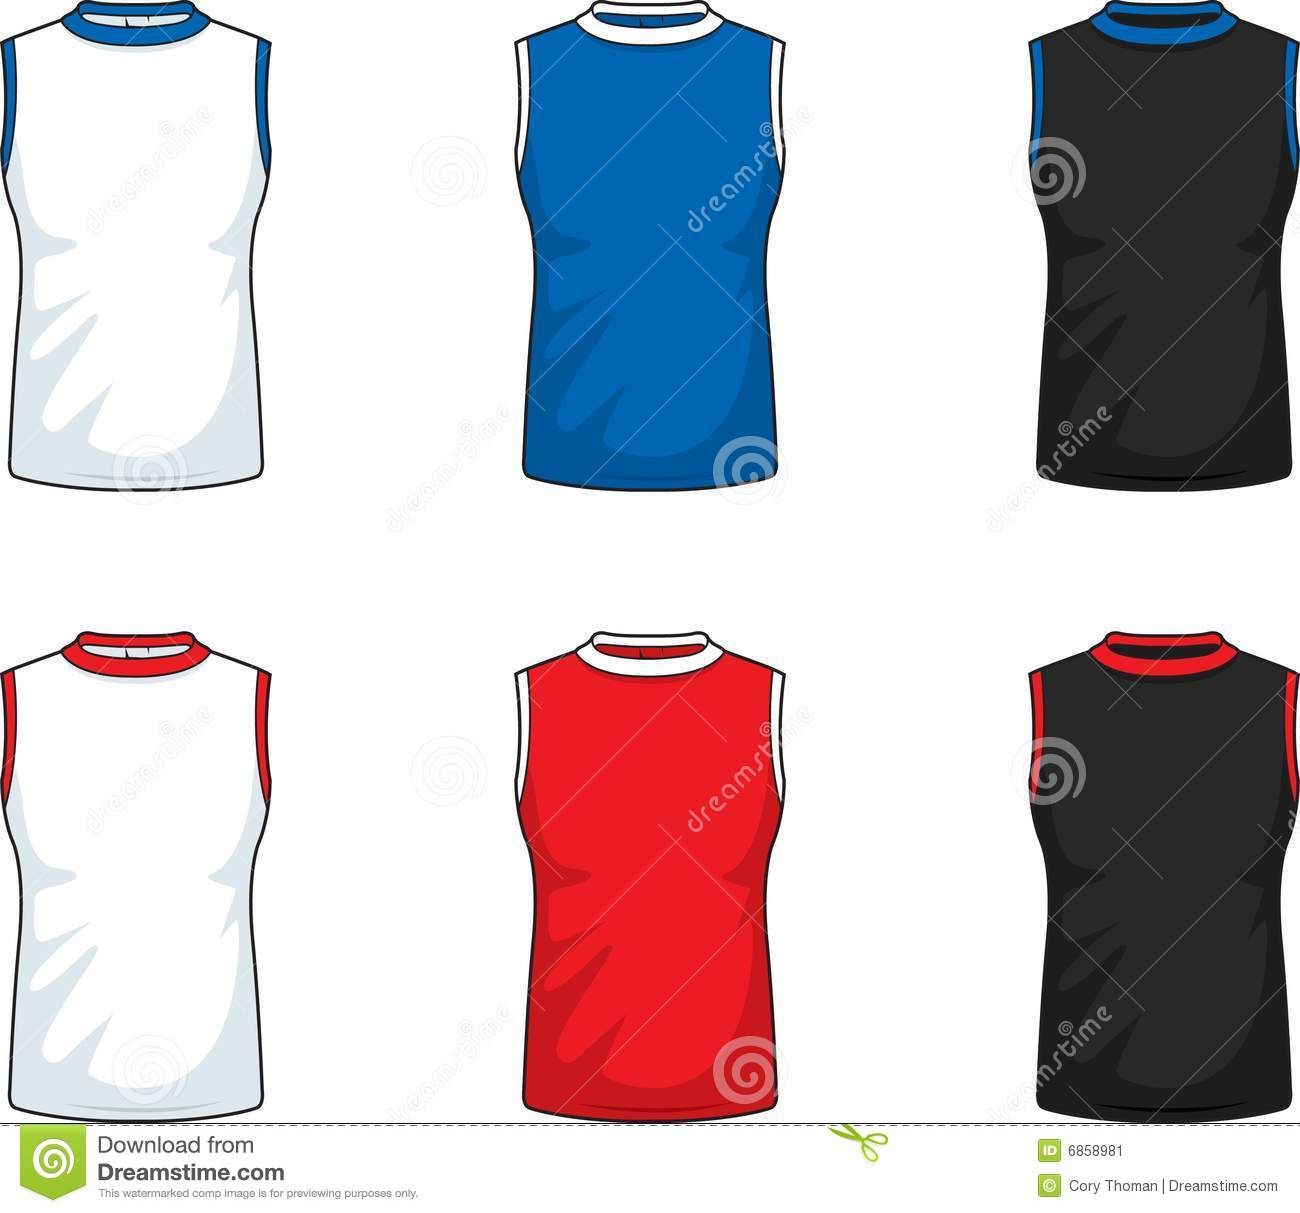 Sleeveless t shirts blank templates stock vector image 4745812 more similar stock images of sleeveless shirts pronofoot35fo Image collections